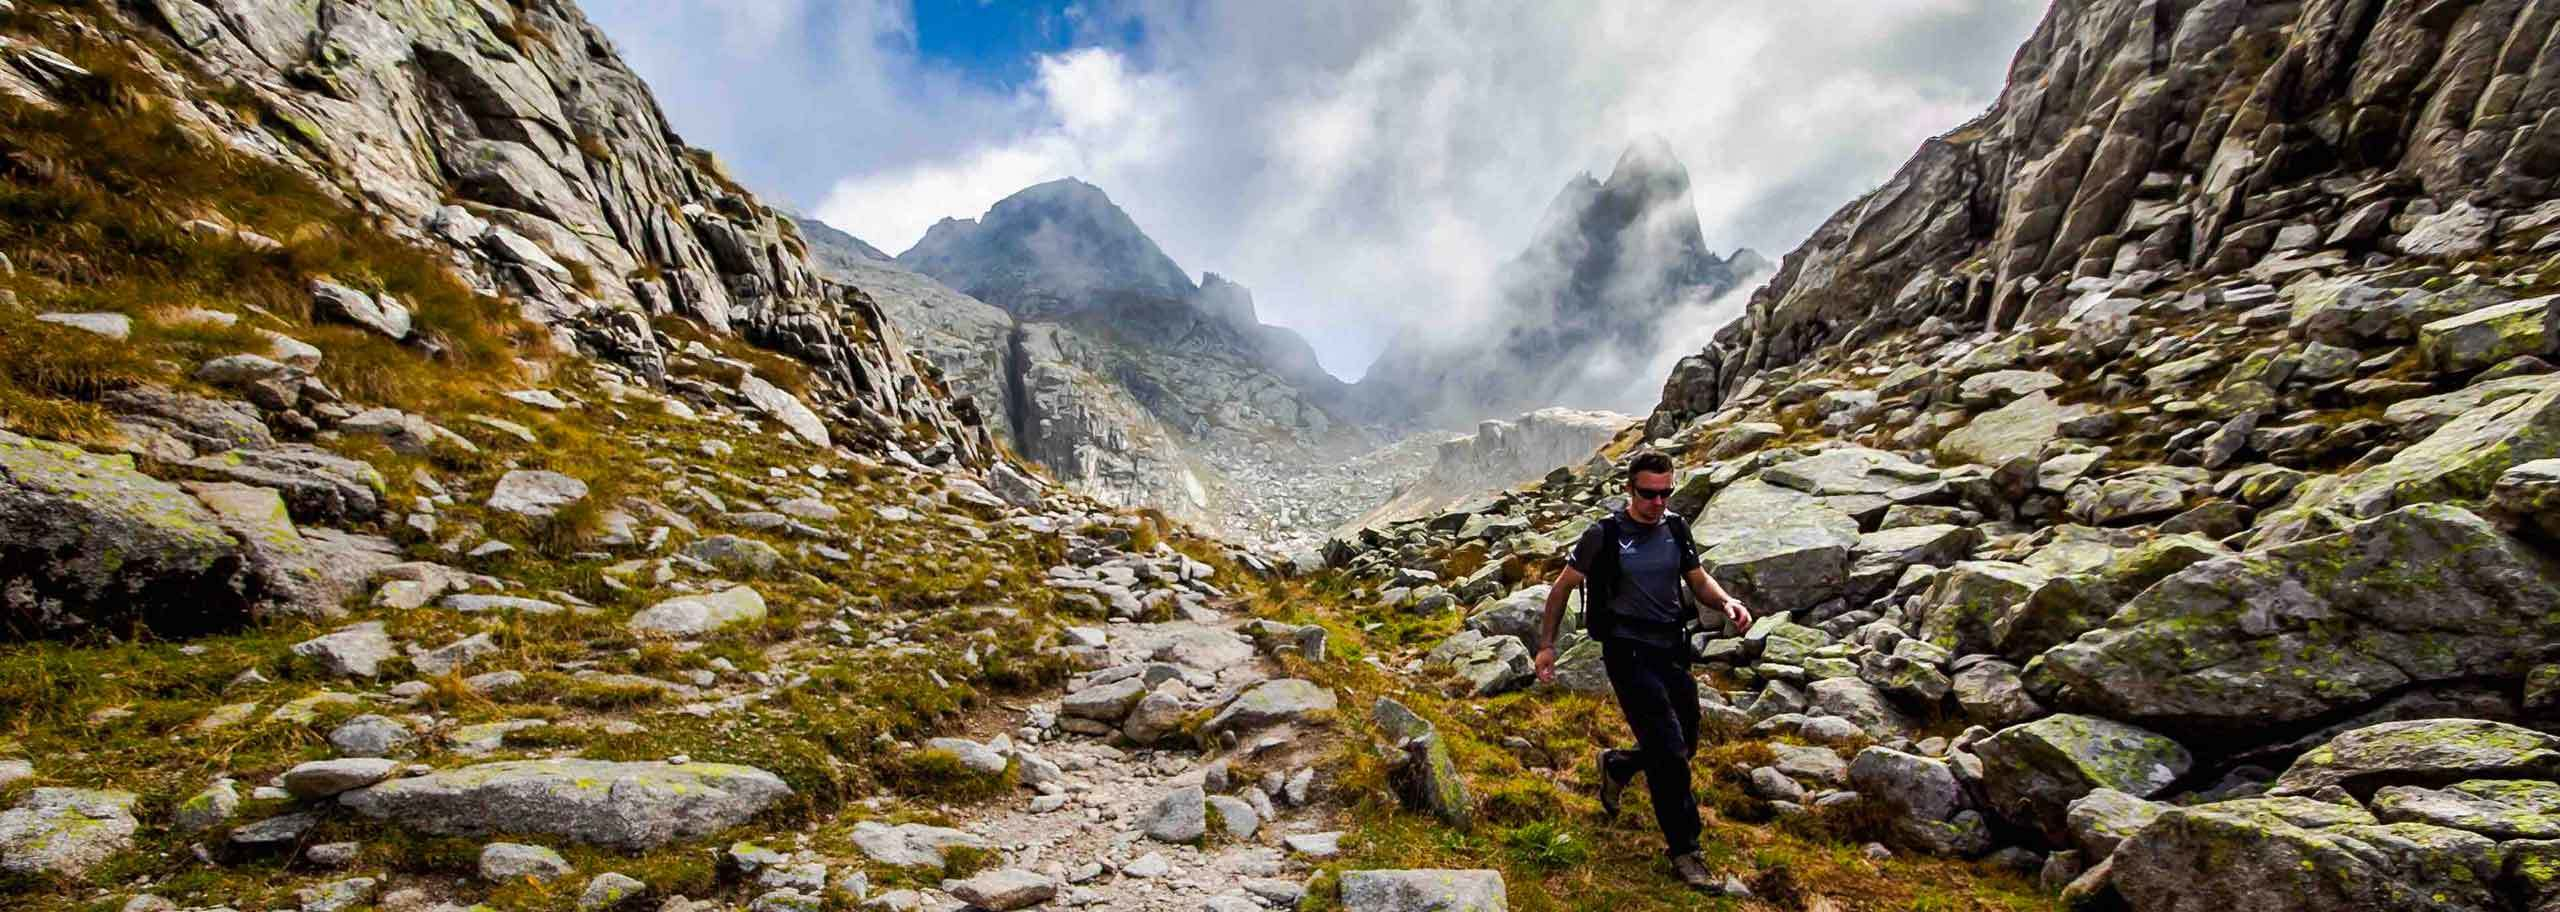 Trekking with a Mountain Guide in Cavalese and Val di Fiemme